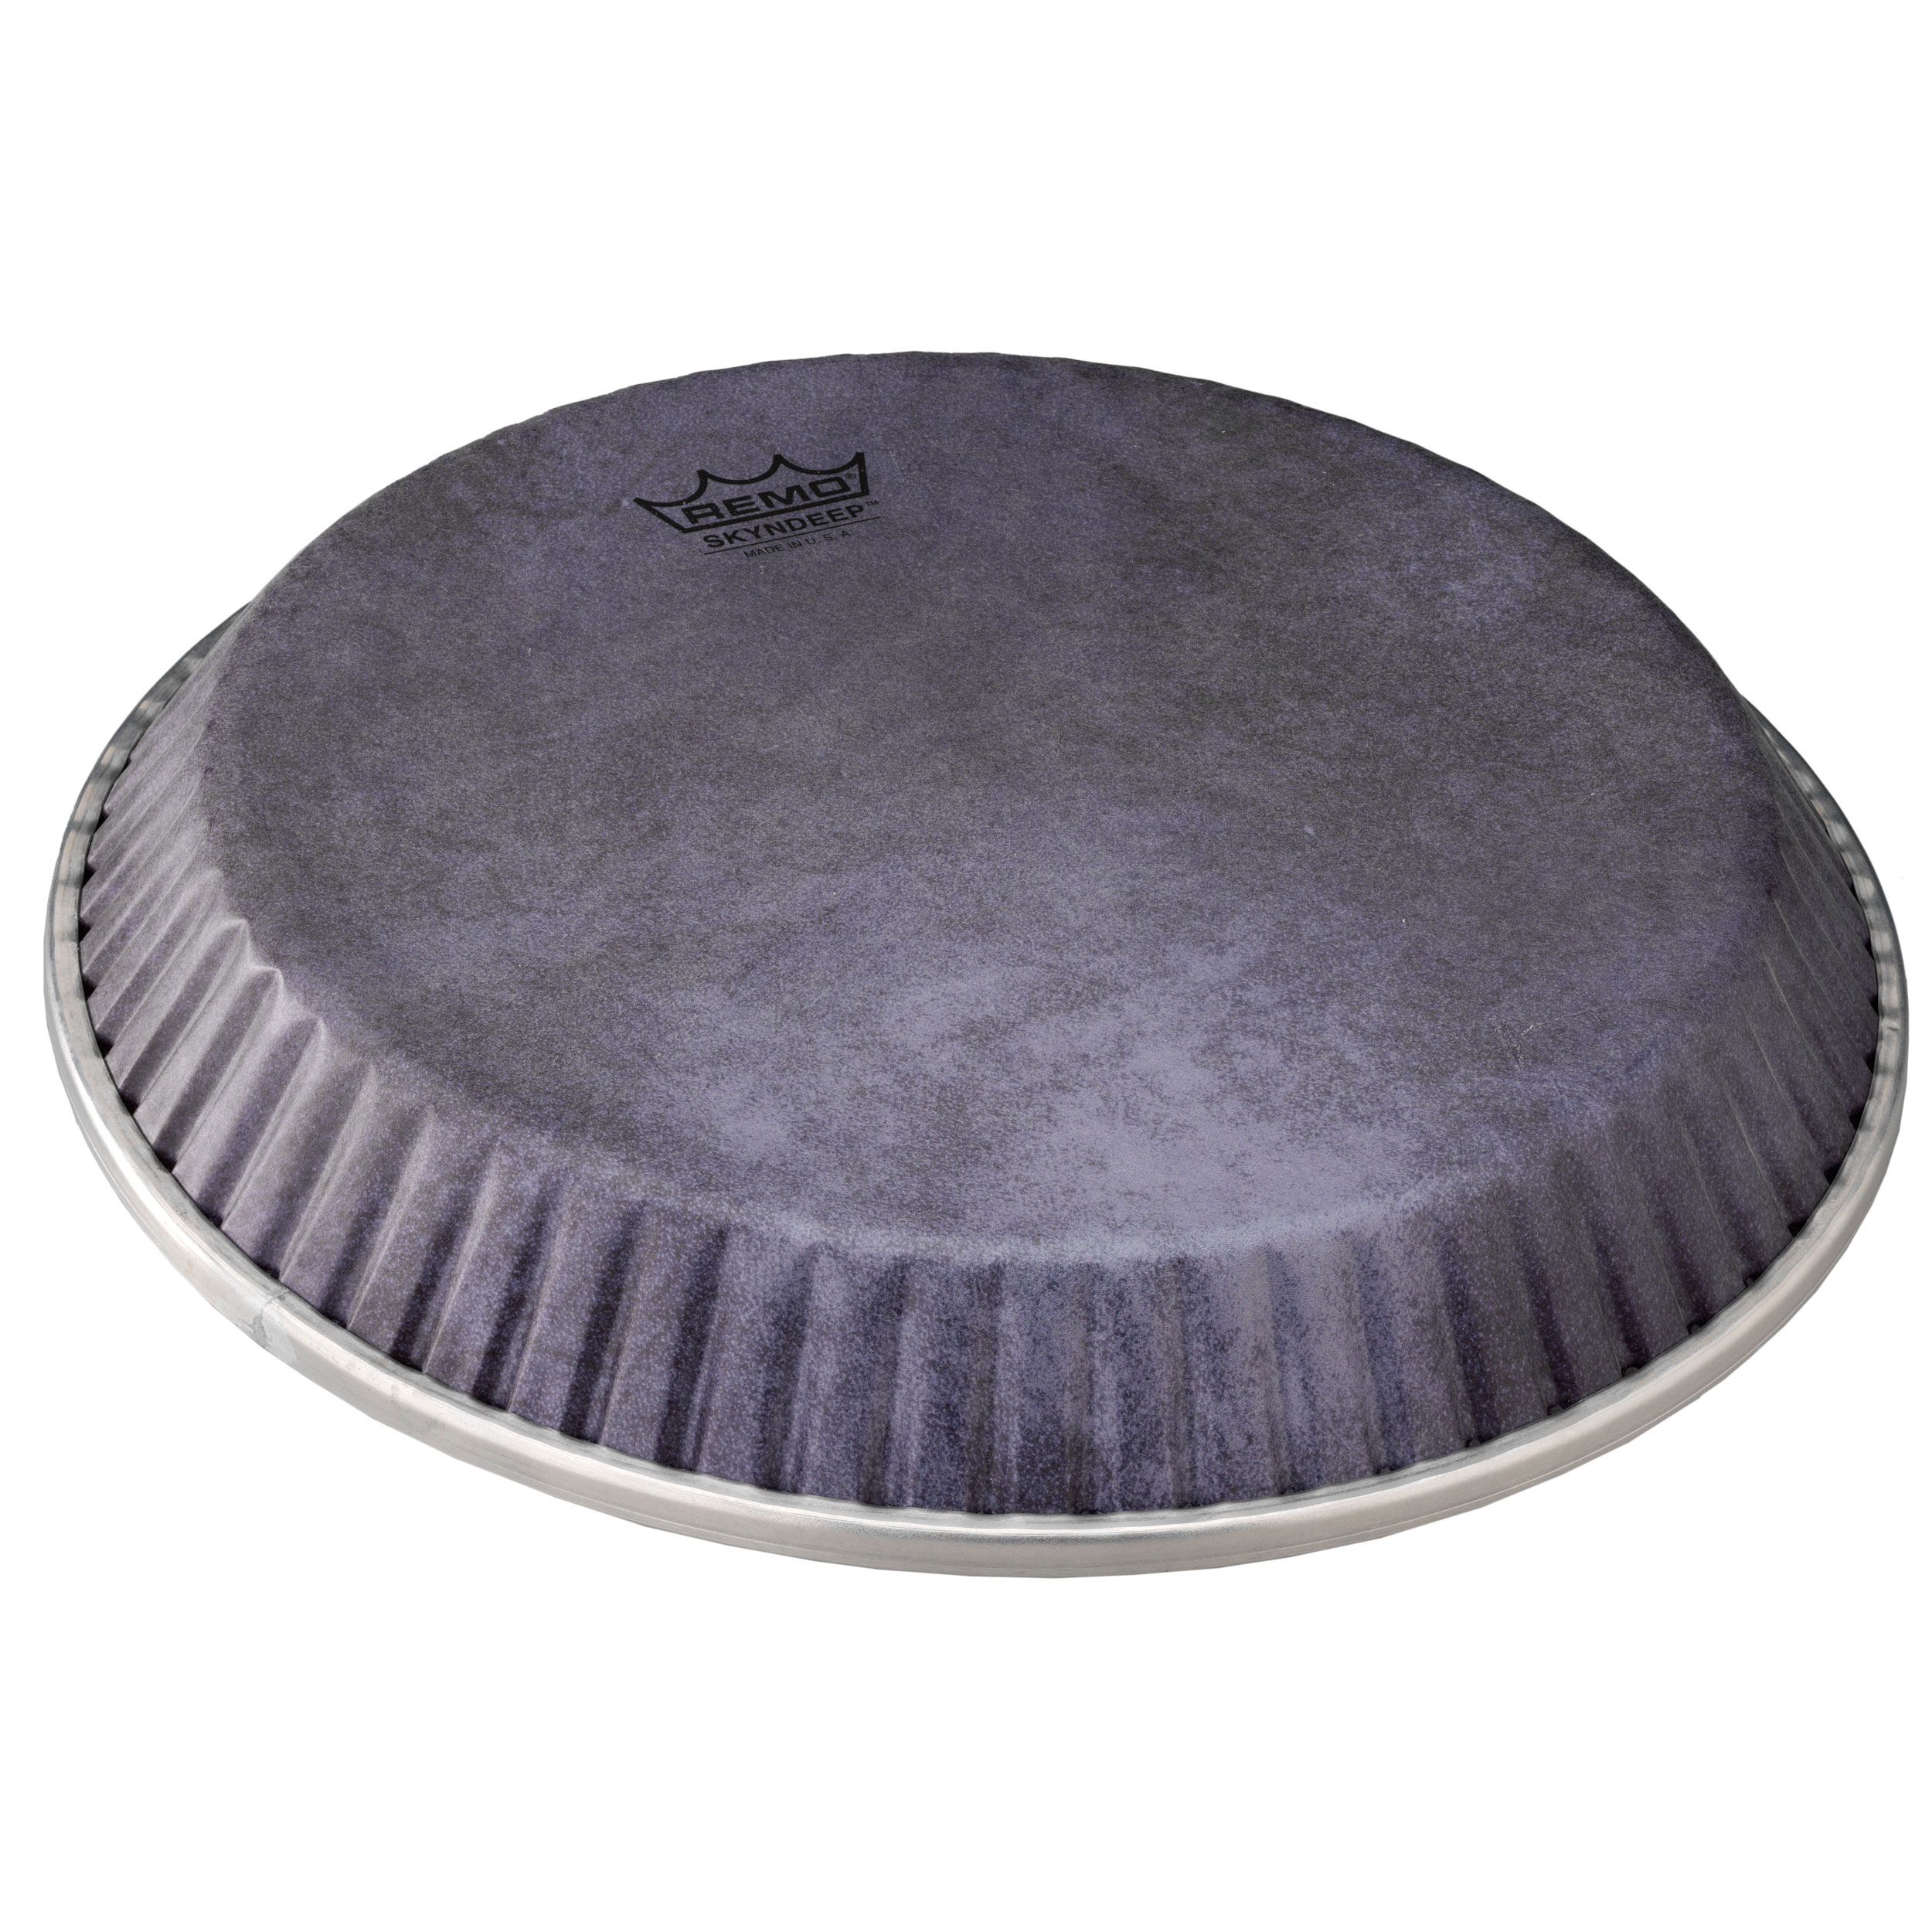 """Remo 11.06"""" Symmetry Skyndeep Conga Drum Head (D4 Collar) with Black Calfskin Graphic"""